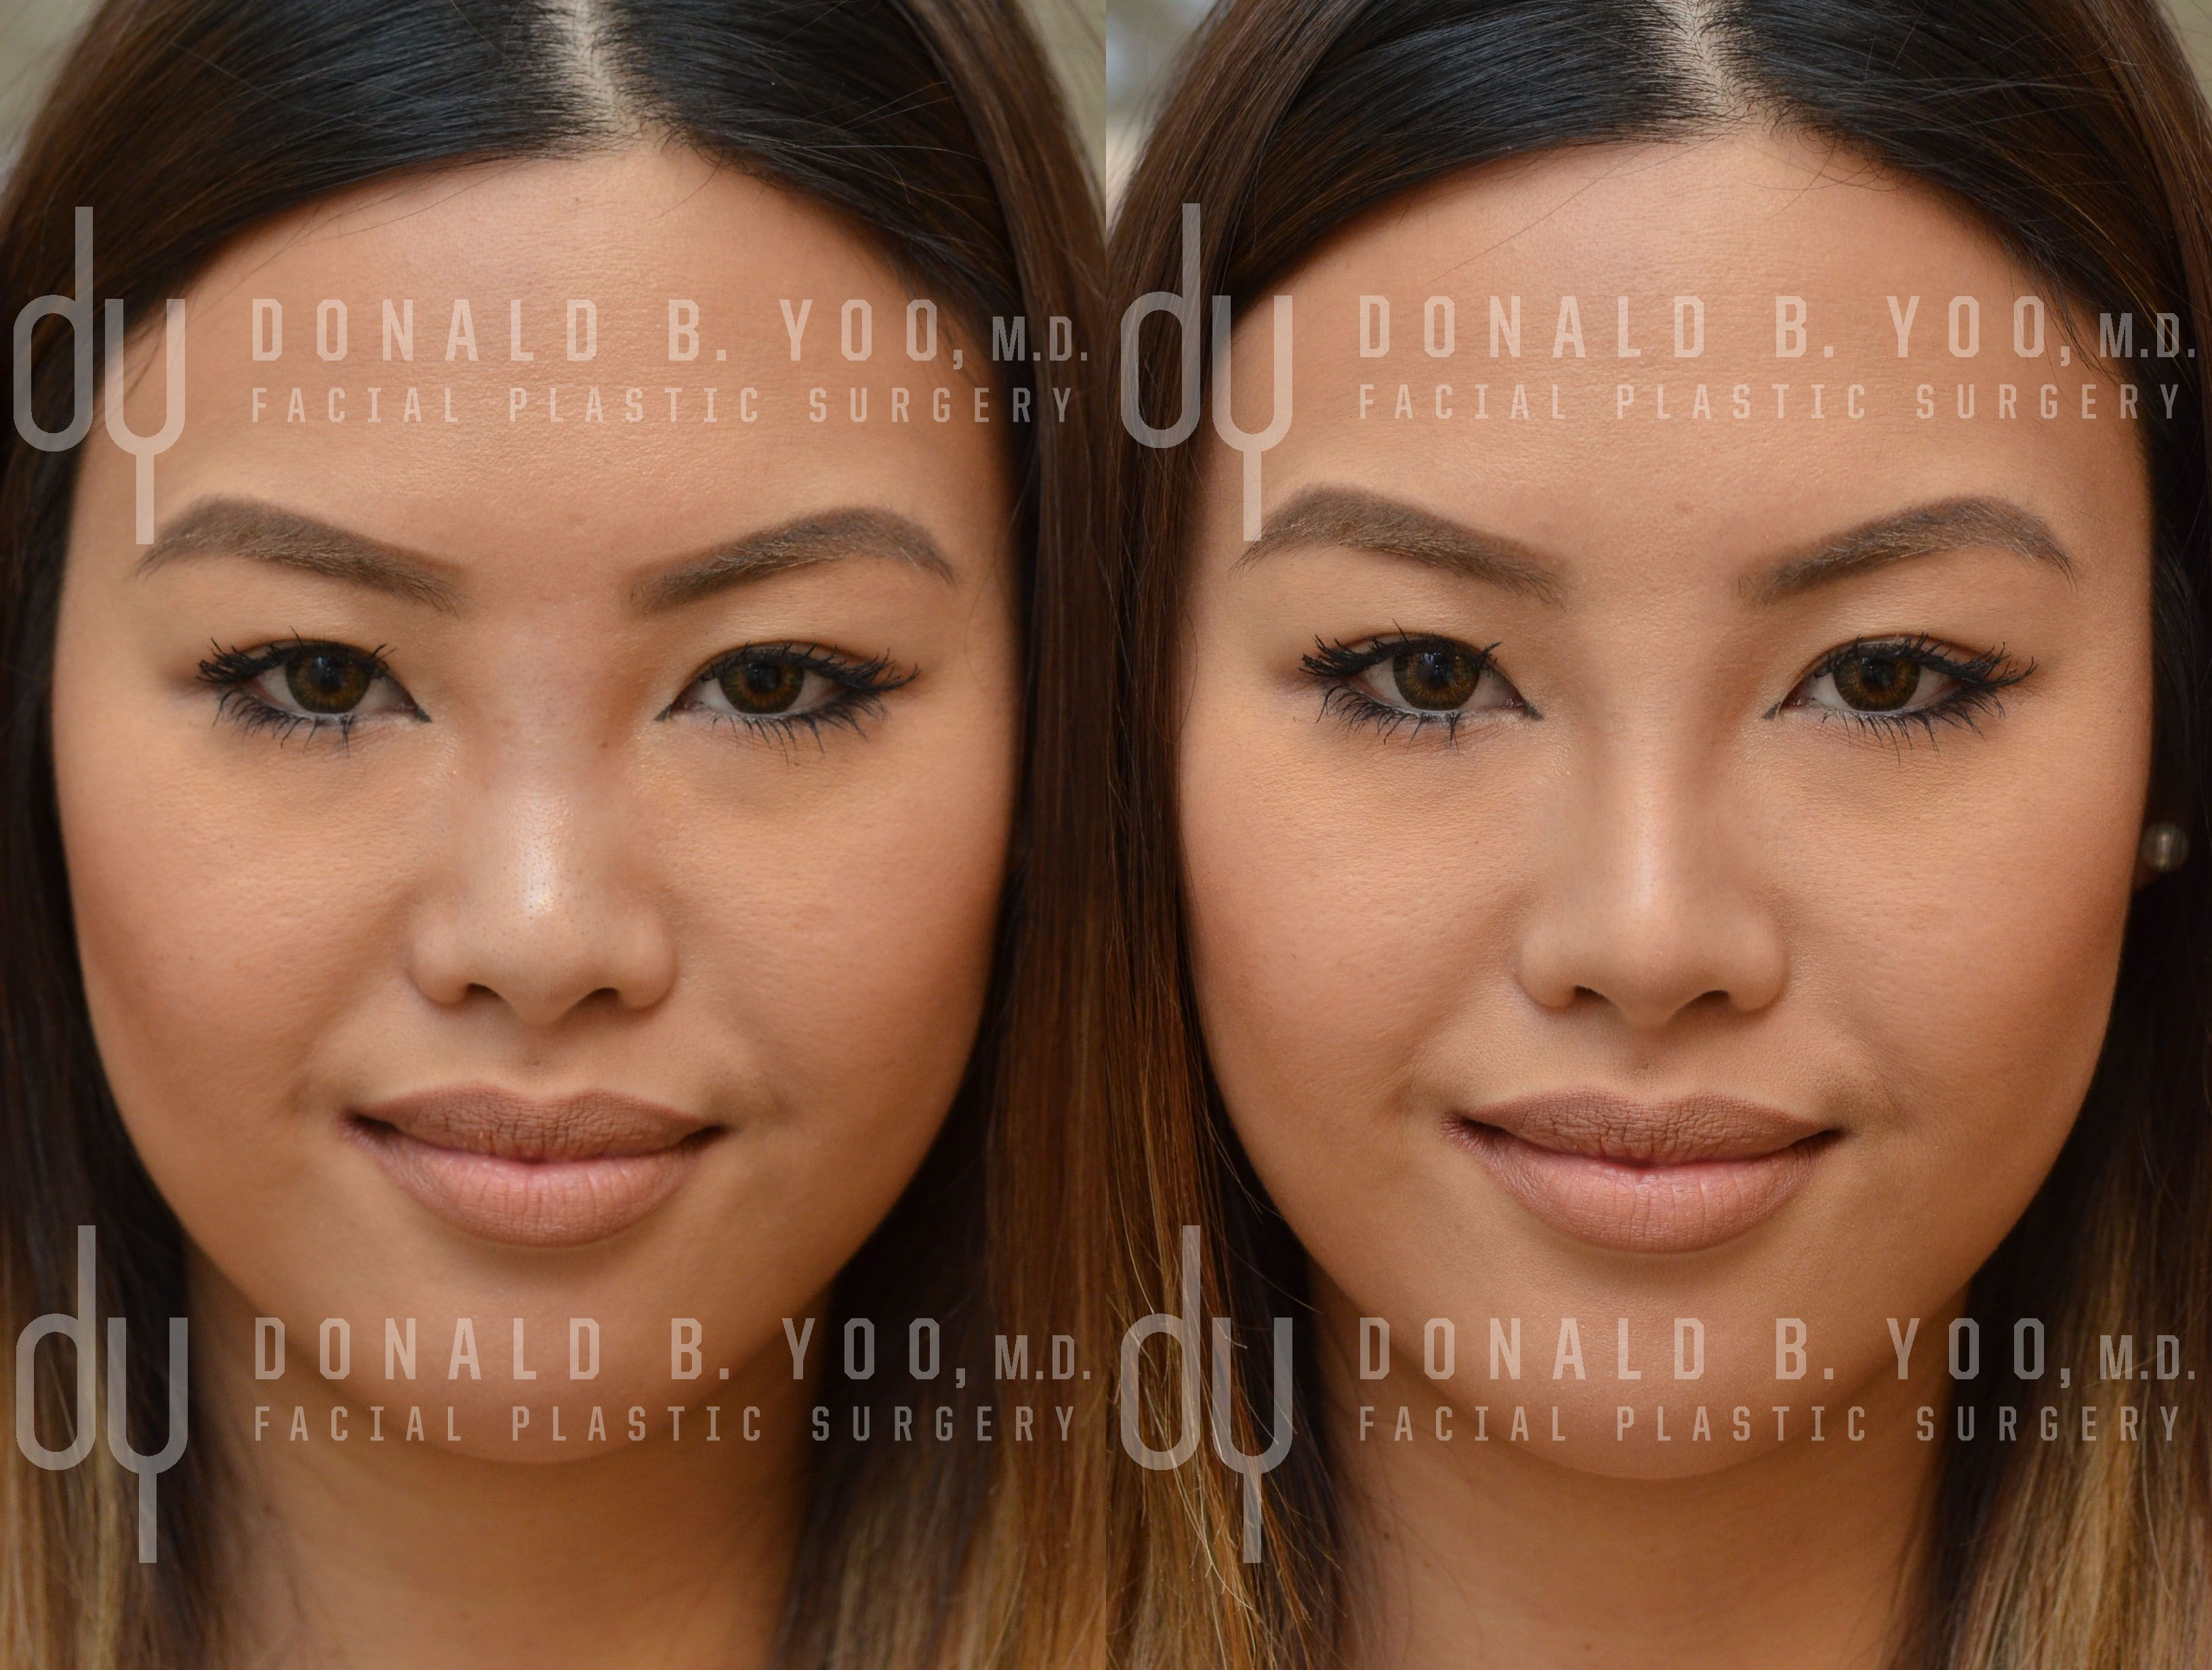 Beverly Hills Rhinoplasty Specialist Dr Donald Yoo Performed A Nonsurgical Rhinoplasty With Restyla Facial Plastic Surgery Facial Plastic Nonsurgical Nose Job